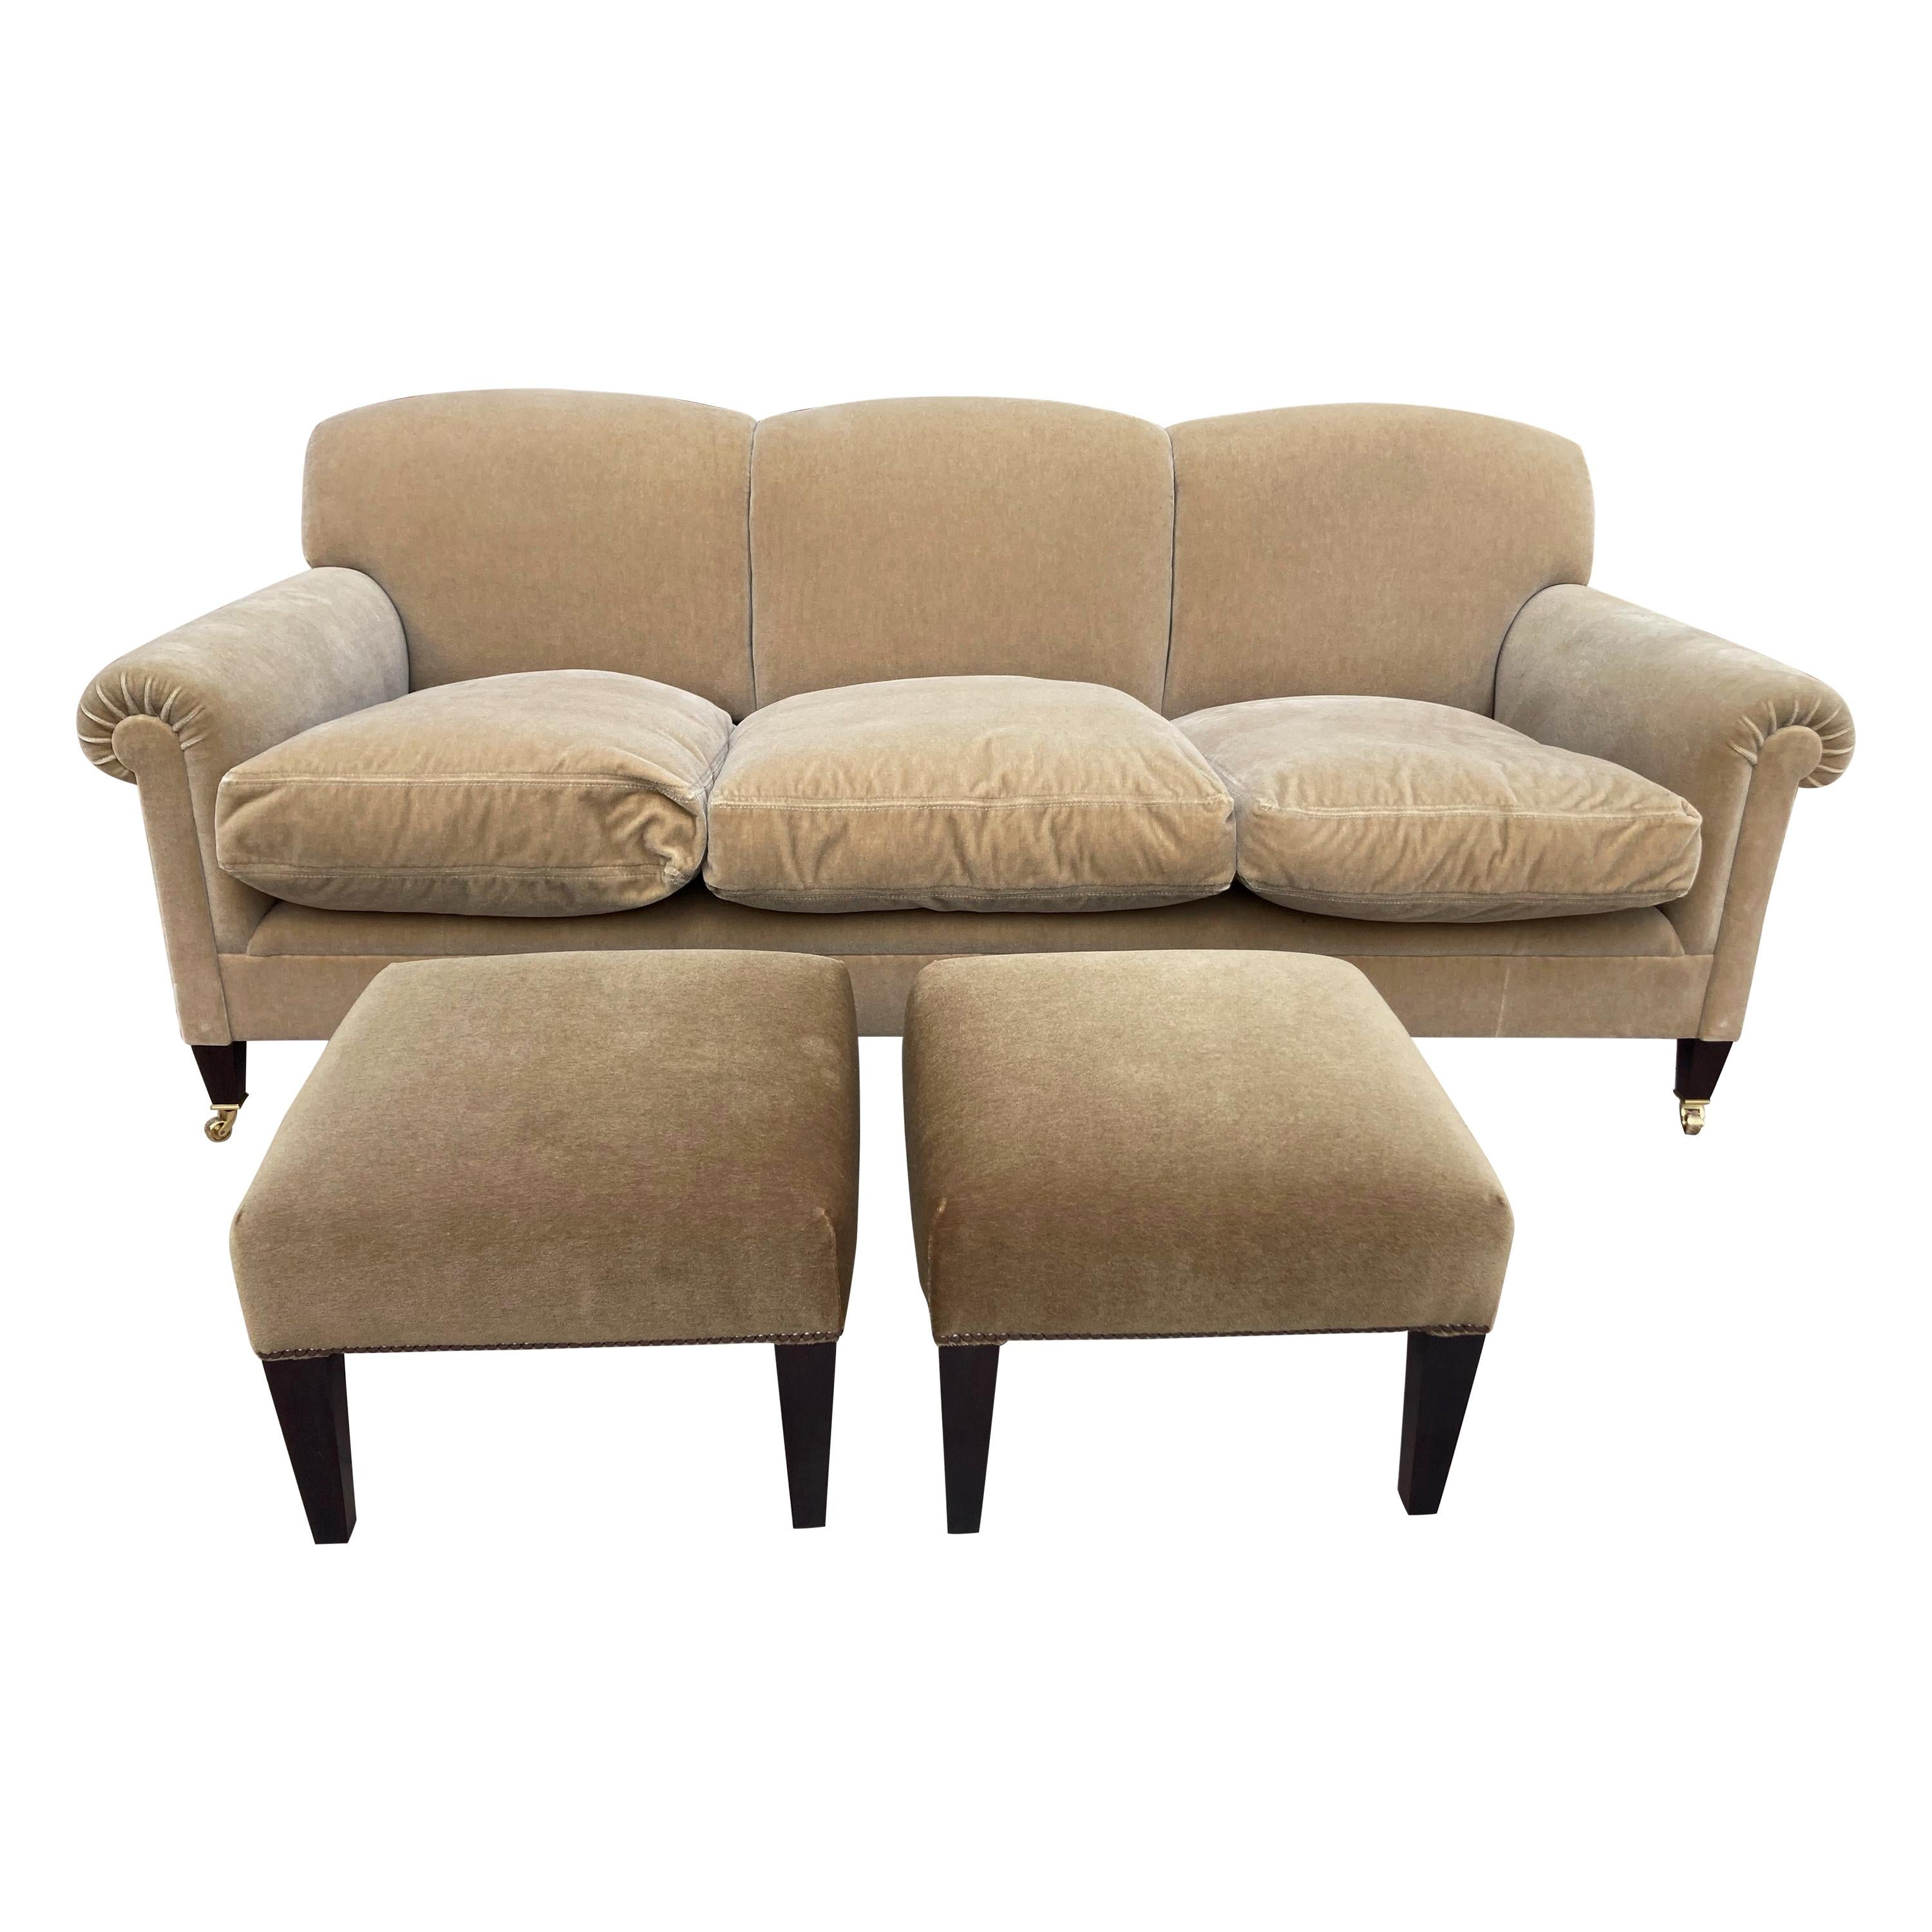 Classic George Smith Signature Scroll Arm Mohair Sofa and Matching Ottomans